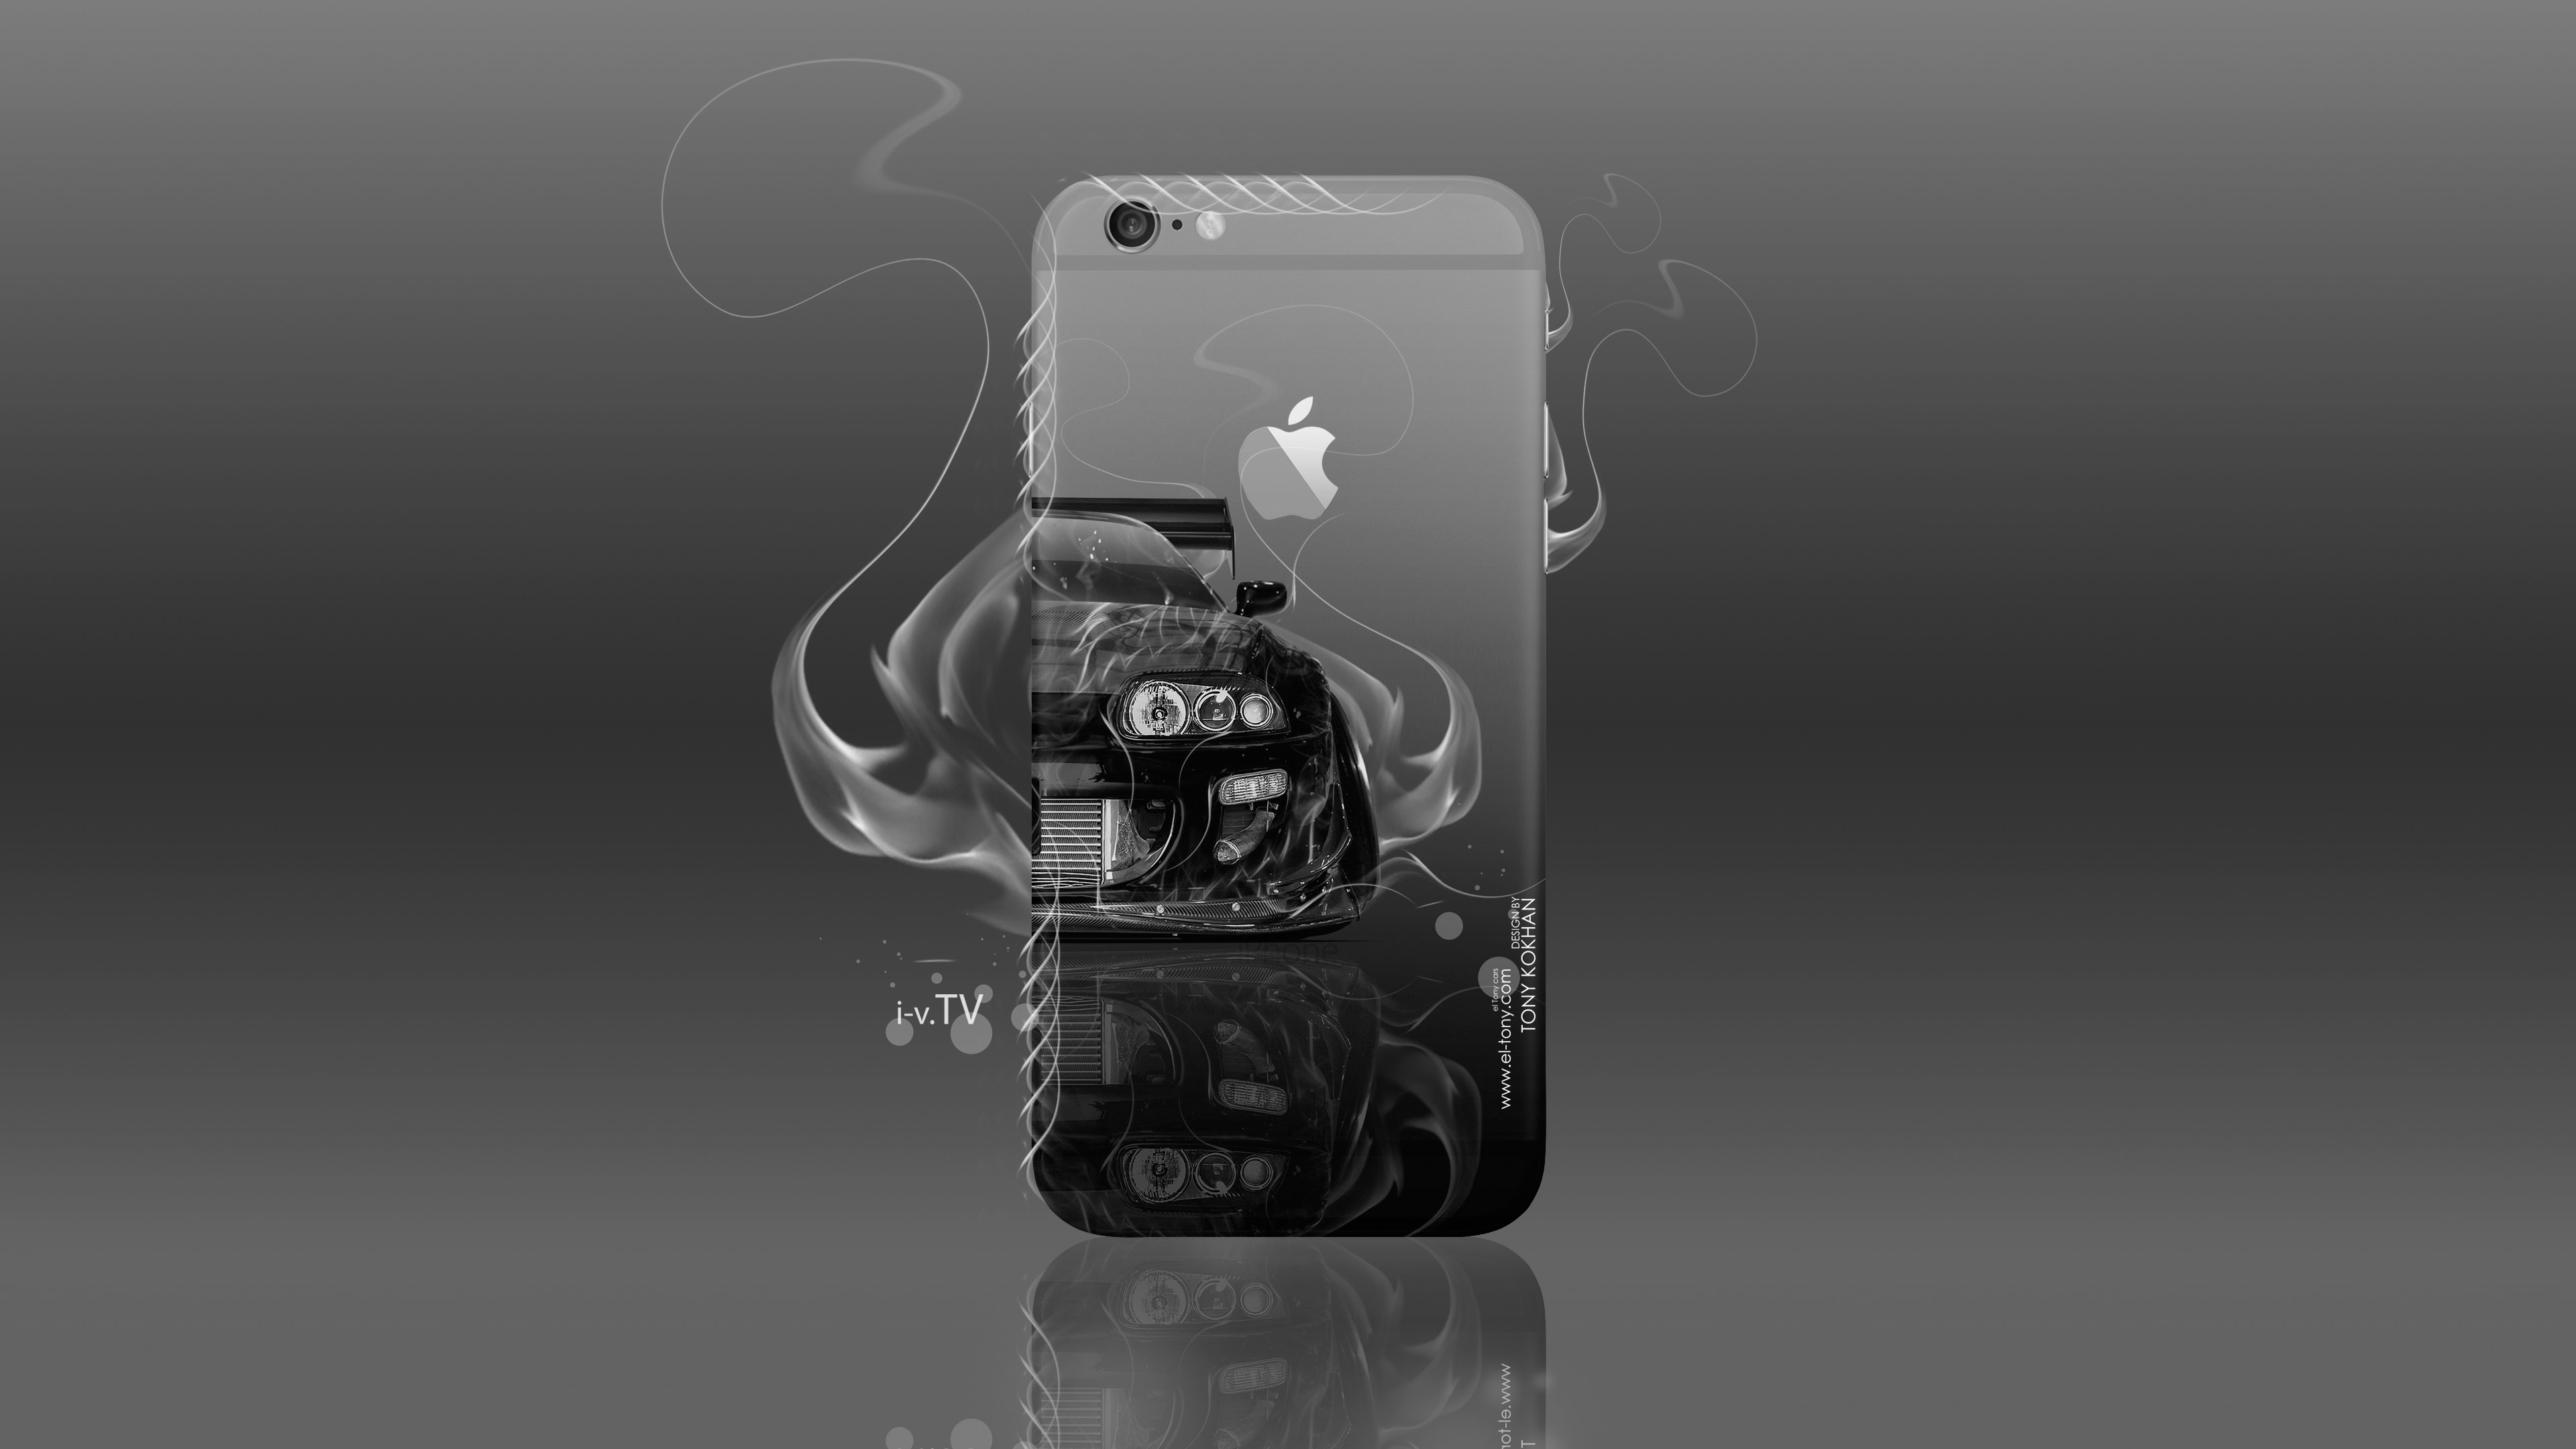 Charmant Apple IPhone 6 Plus Toyota Supra JDM Tuning Front Fire Car 2016